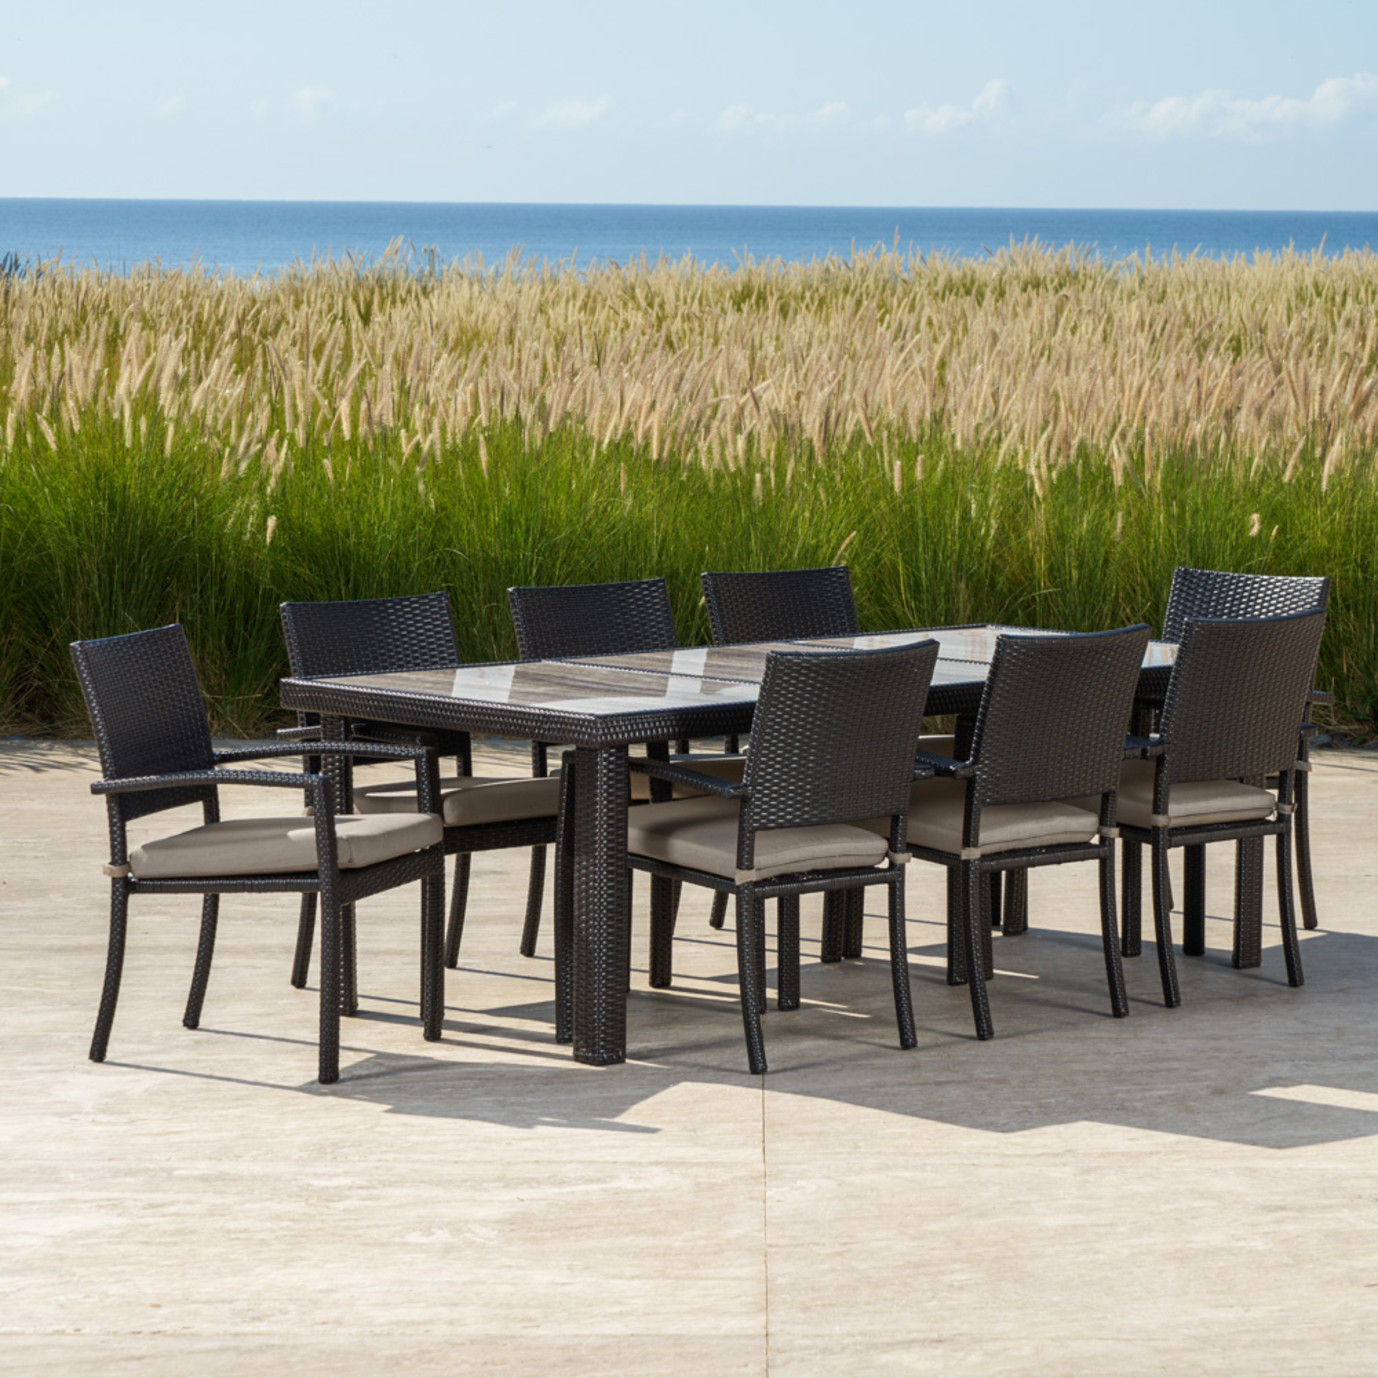 Portofino Comfort 19pc Estate Dining Collection Taupe